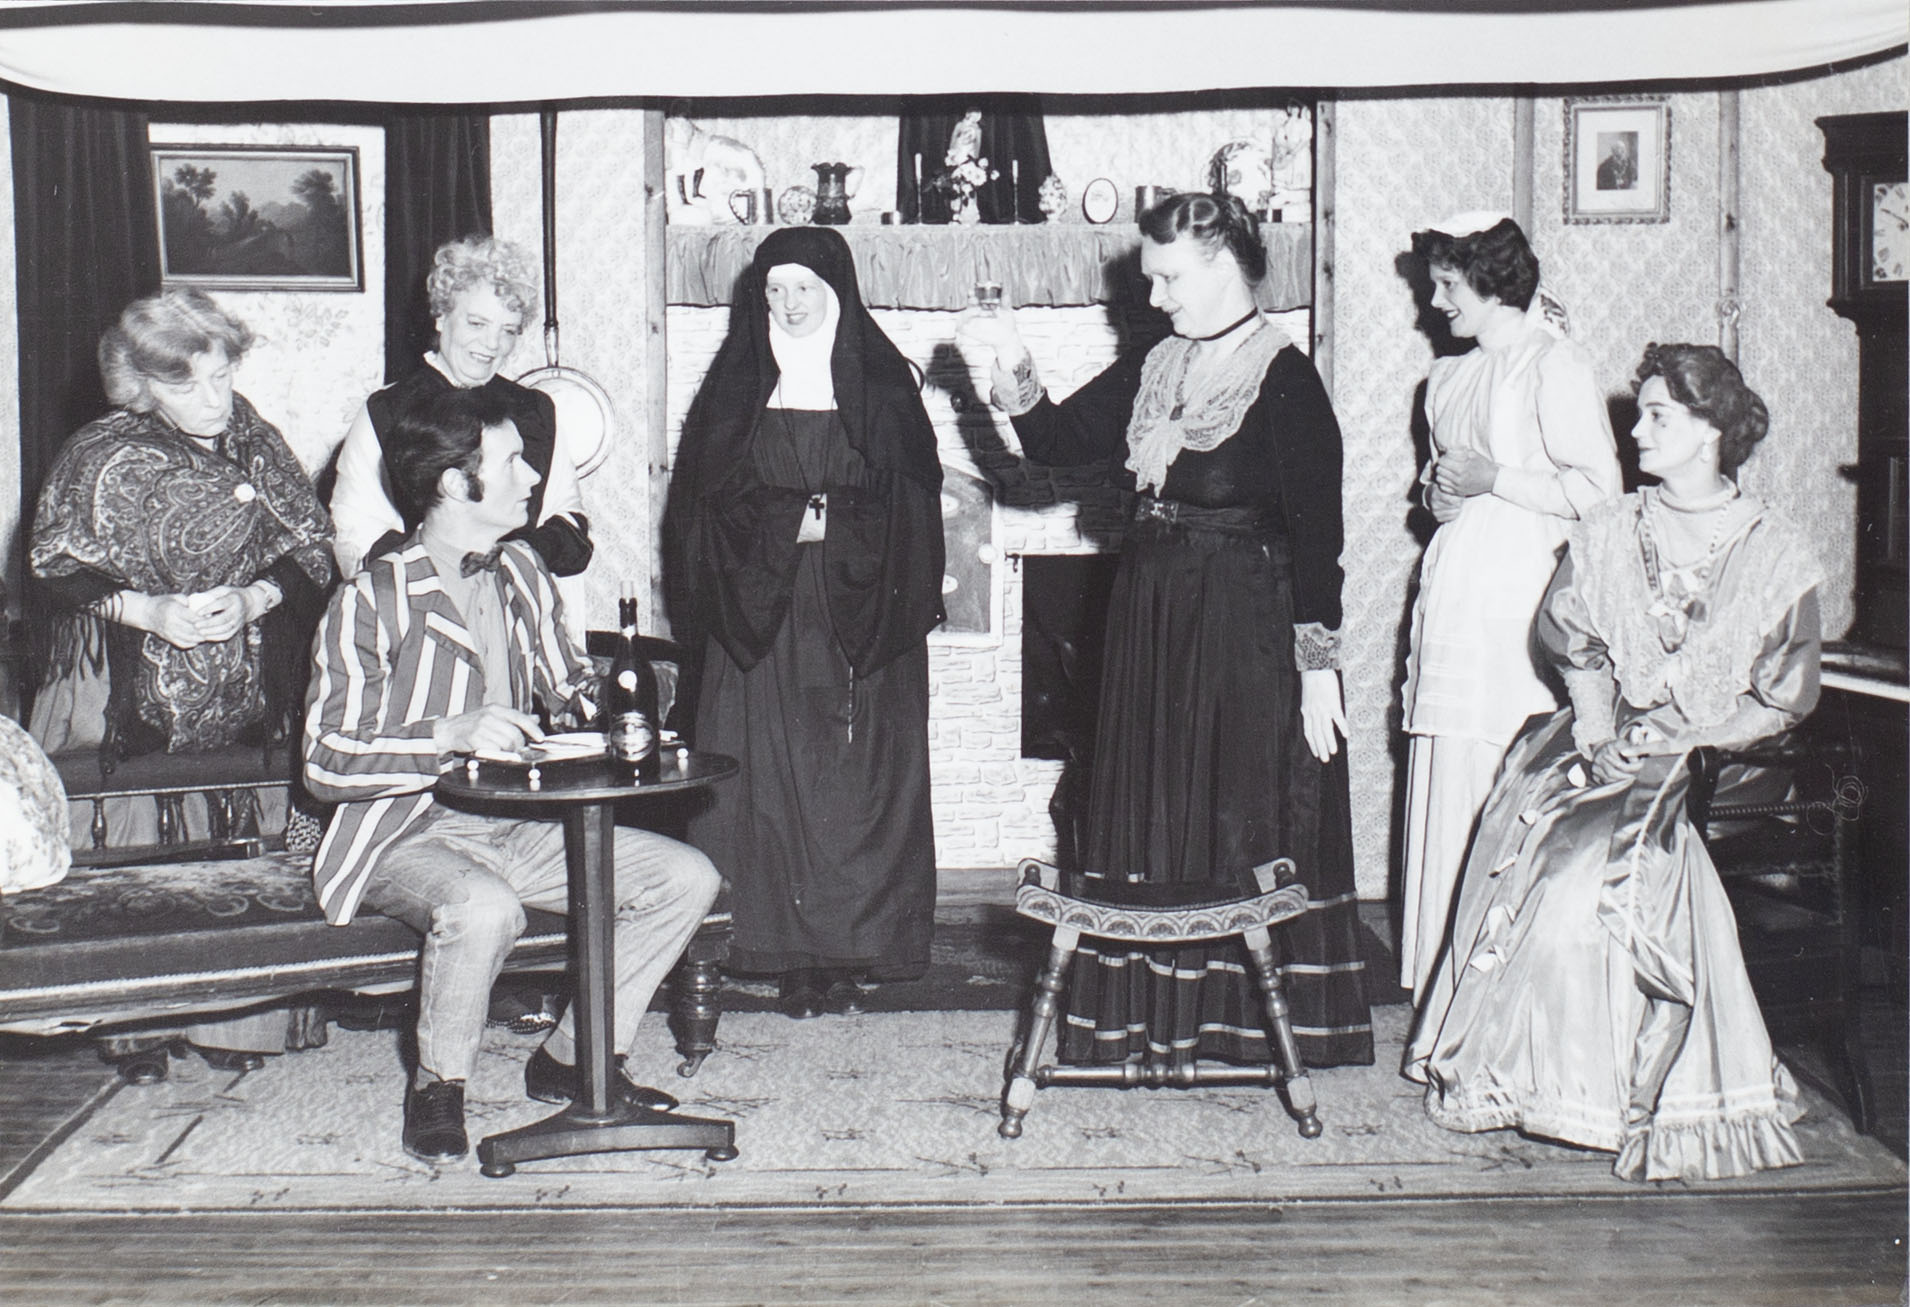 Photograph of some of the Bishopsteignton Players, in a scene from the 1960s play 'Ladies in Retirement'